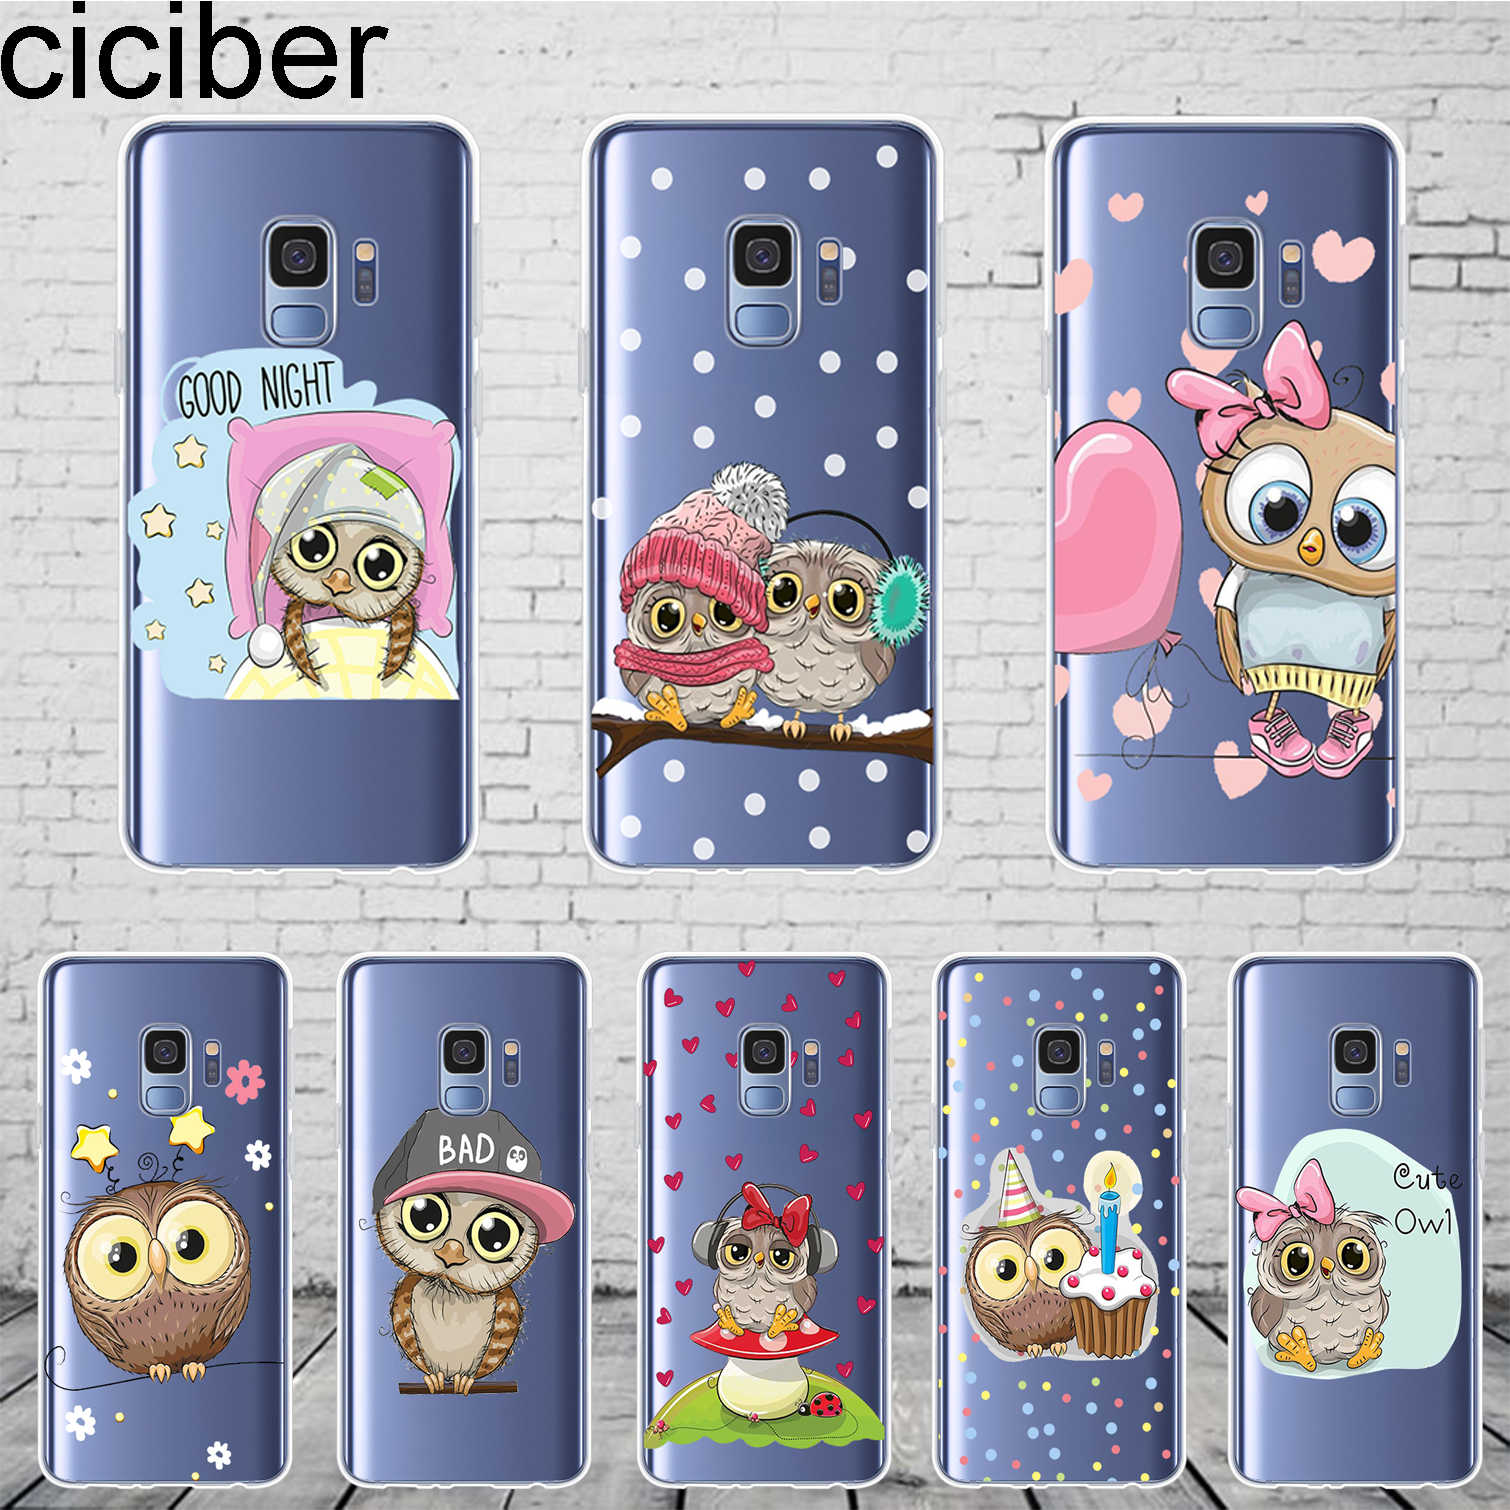 ciciber Animal Owl Coque For Samsung Galaxy S 6 7 8 9 10 Edge Plus Phone Case For Galaxy Note 3 4 5 8 9 10 Plus Cover Soft TPU